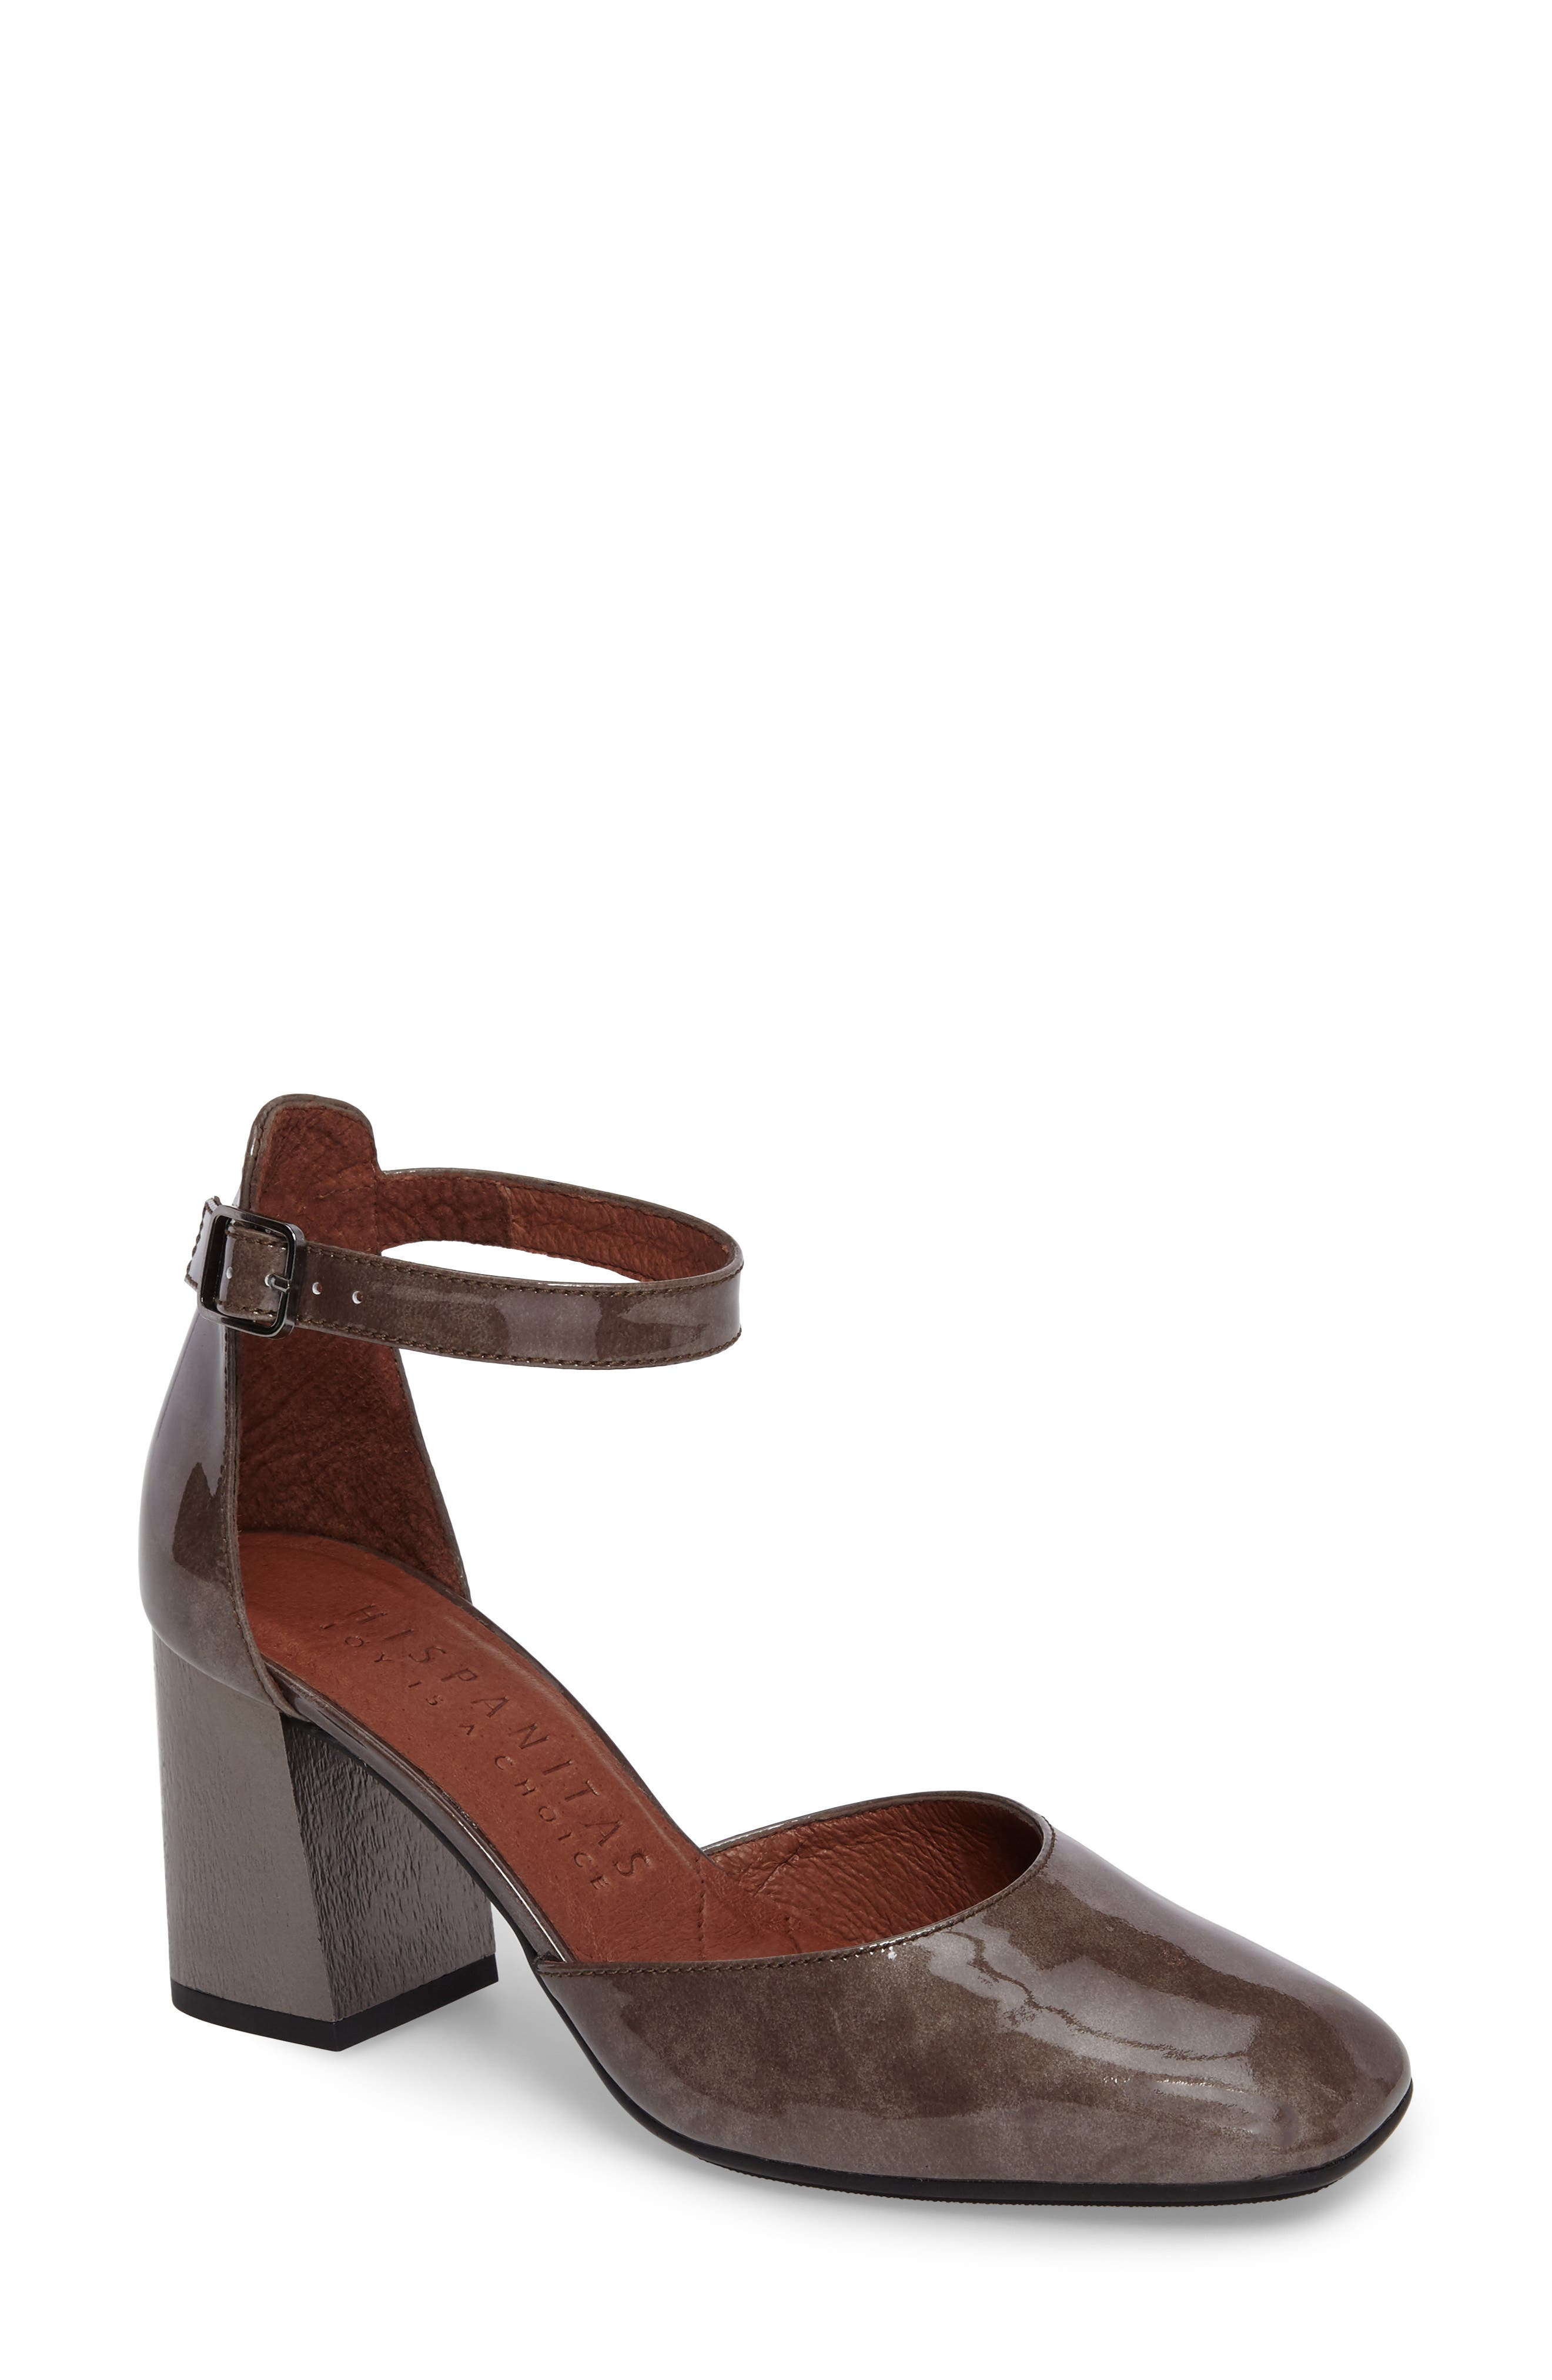 Paulette Flared Heel Pump,                             Main thumbnail 1, color,                             Vision Leather